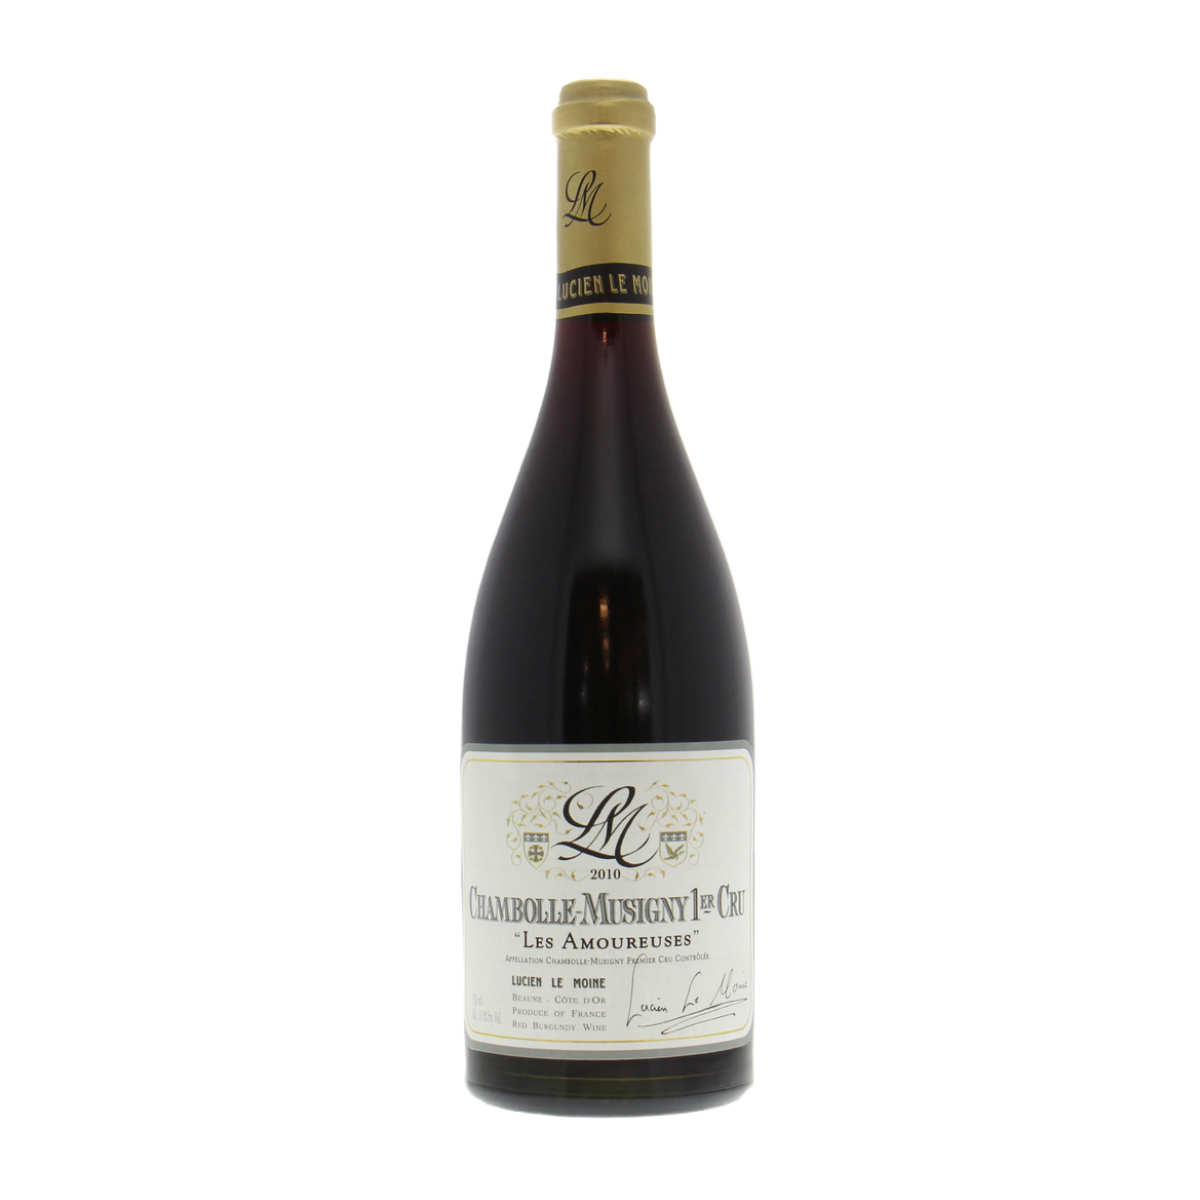 Le Moine Chambolle-Musigny 1er Cru Les Amoureuses